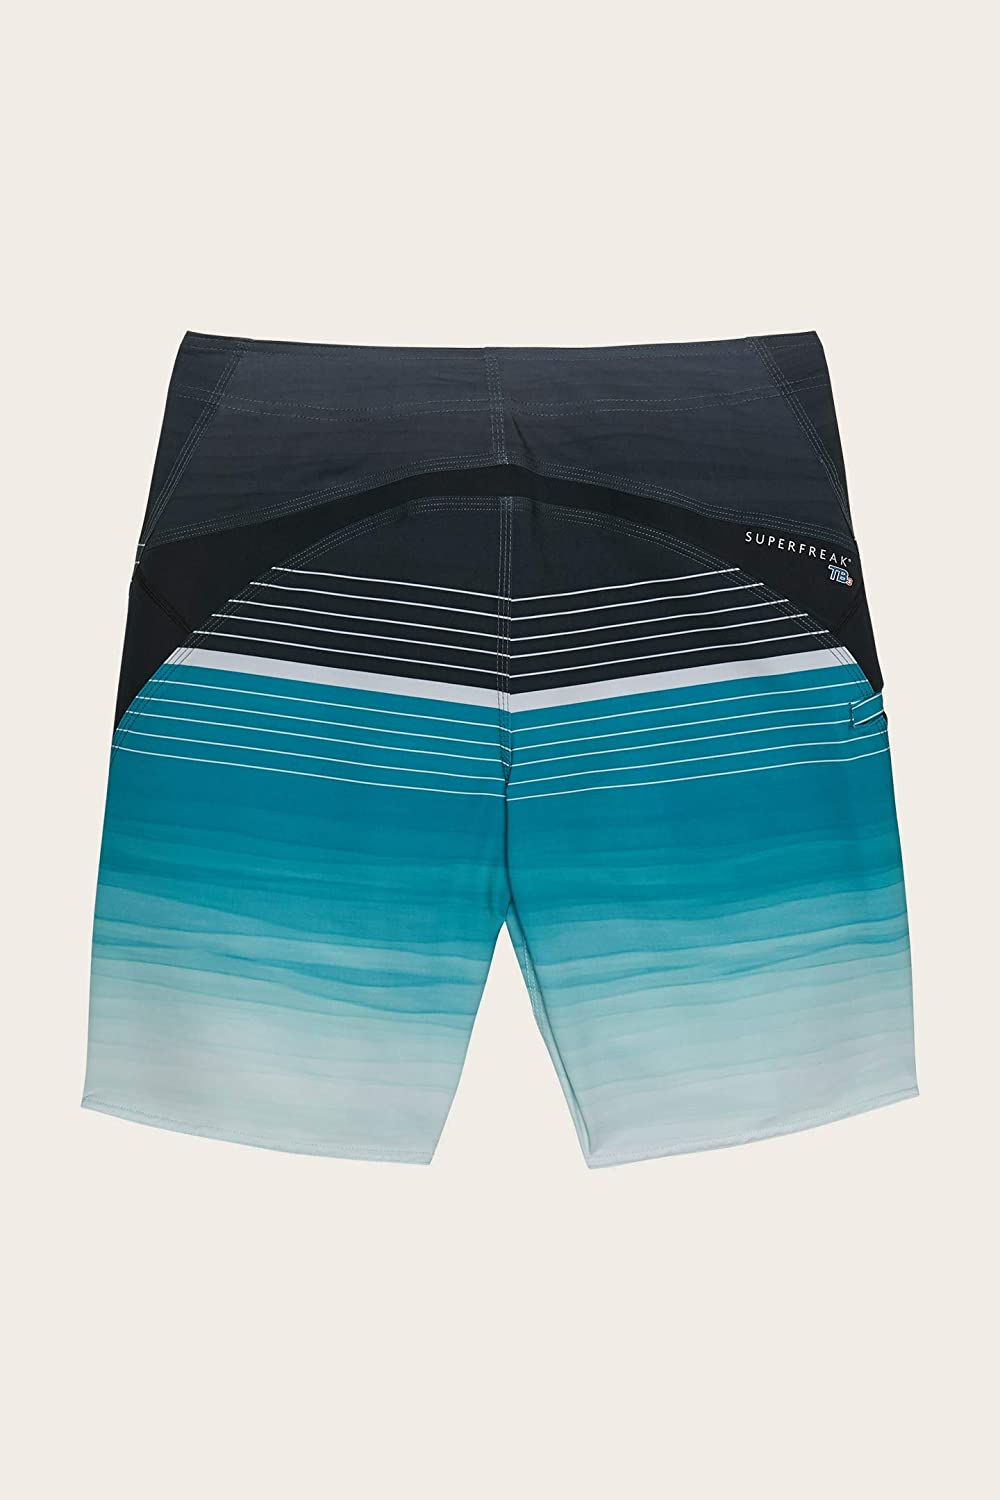 ONEILL Mens Water Resistant Superfreak Stretch Swim Boardshorts 20 Inch Outseam Mid-Length Boardshort